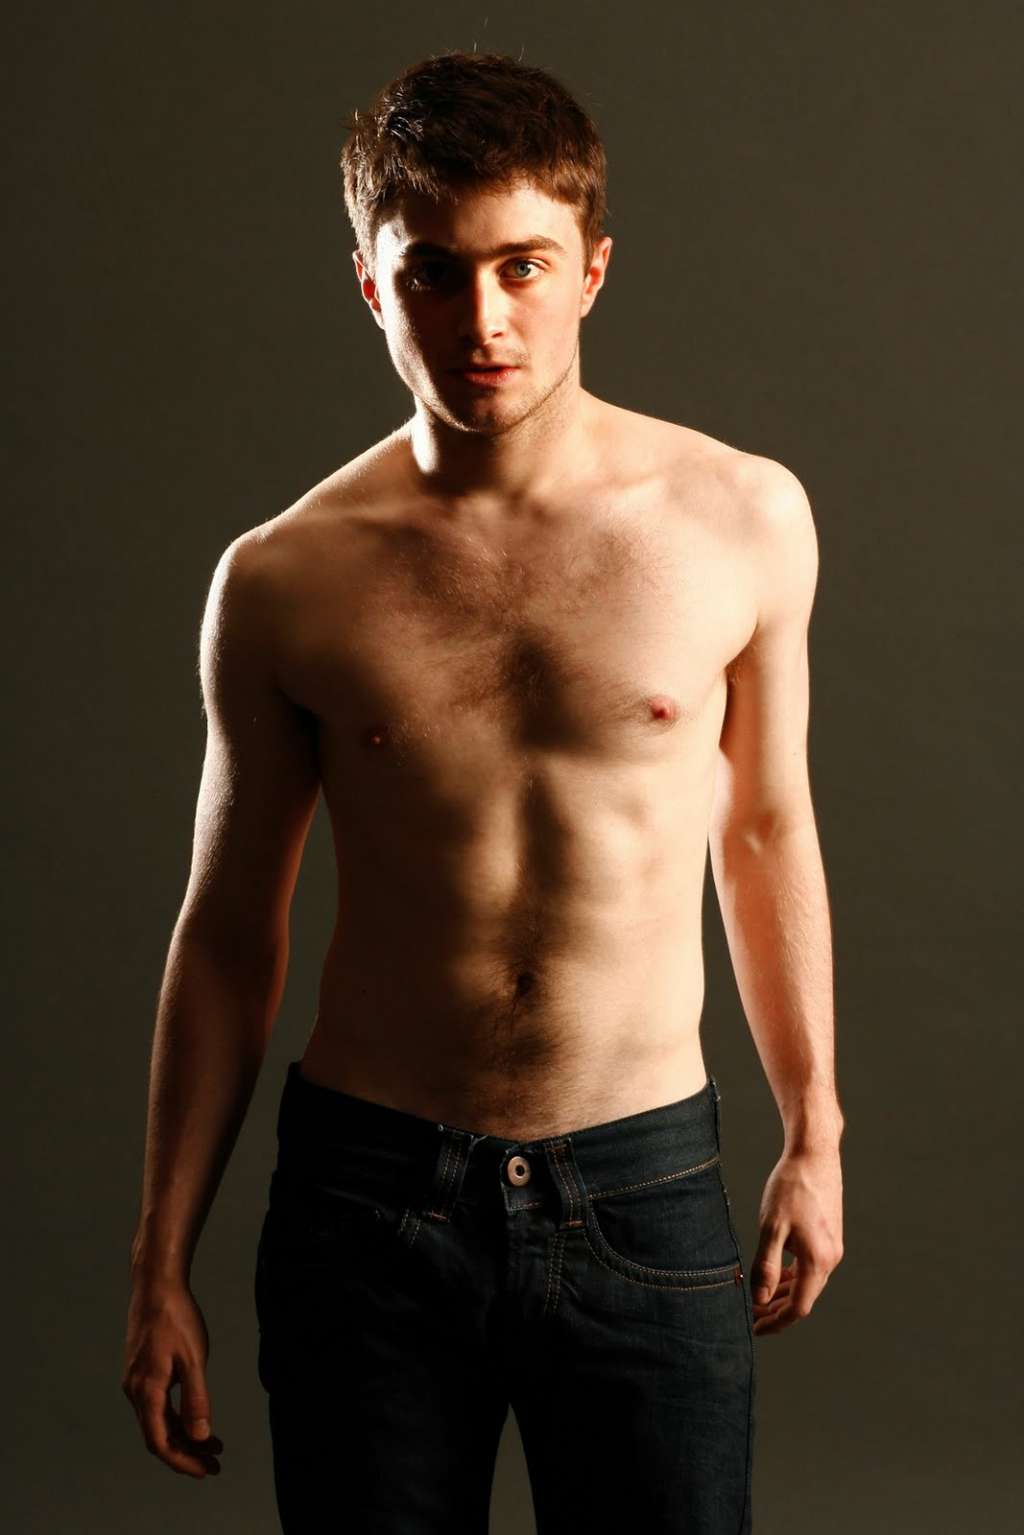 Harry Potters Daniel Radcliffe Naked & Fully Exposed Cock